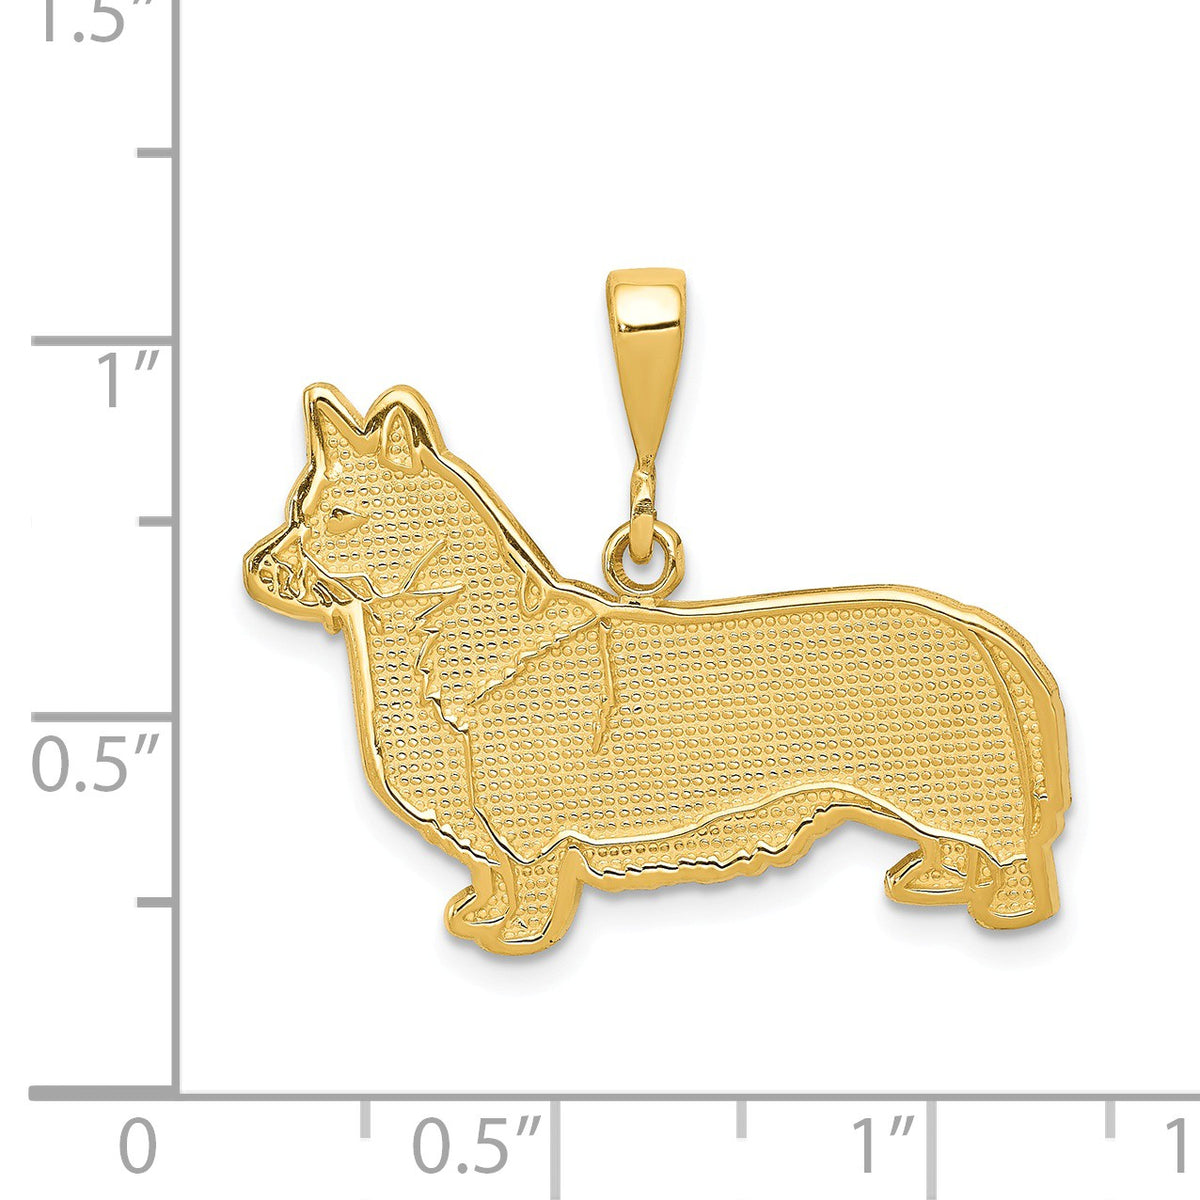 Alternate view of the 14k Yellow Gold Welsh Corgi Dog Pendant by The Black Bow Jewelry Co.